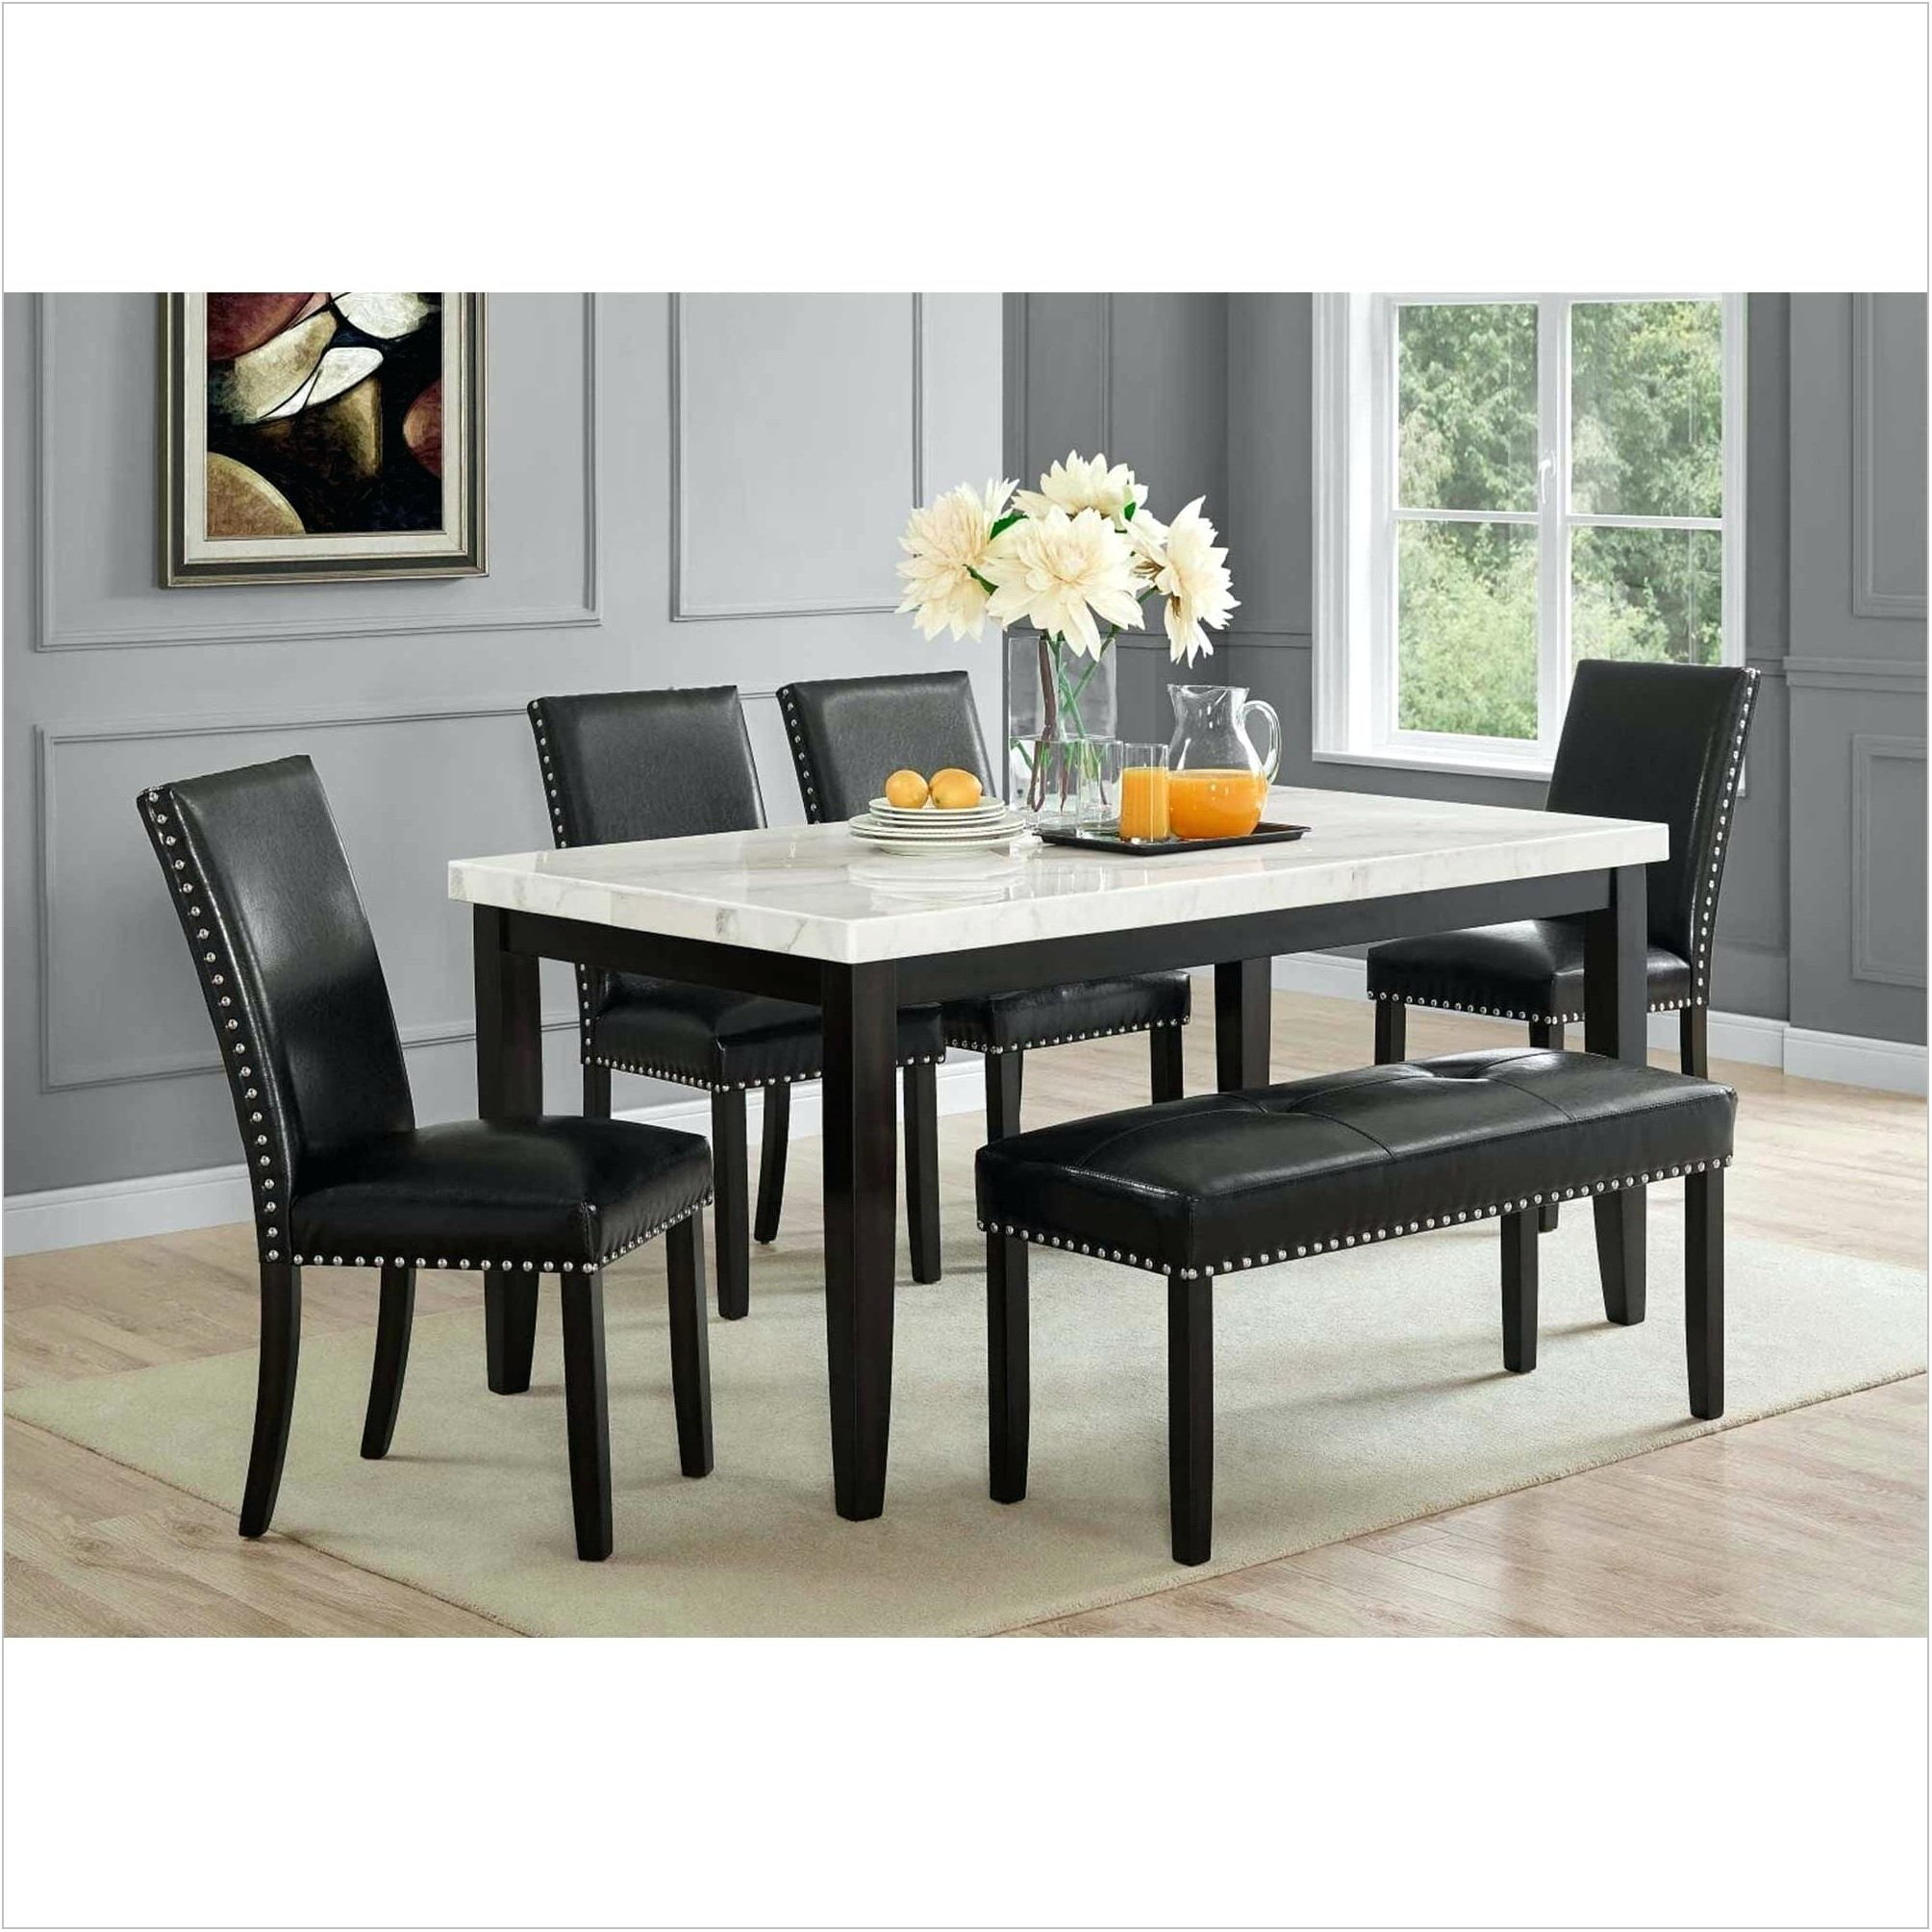 6 Piece Dining Room Chairs